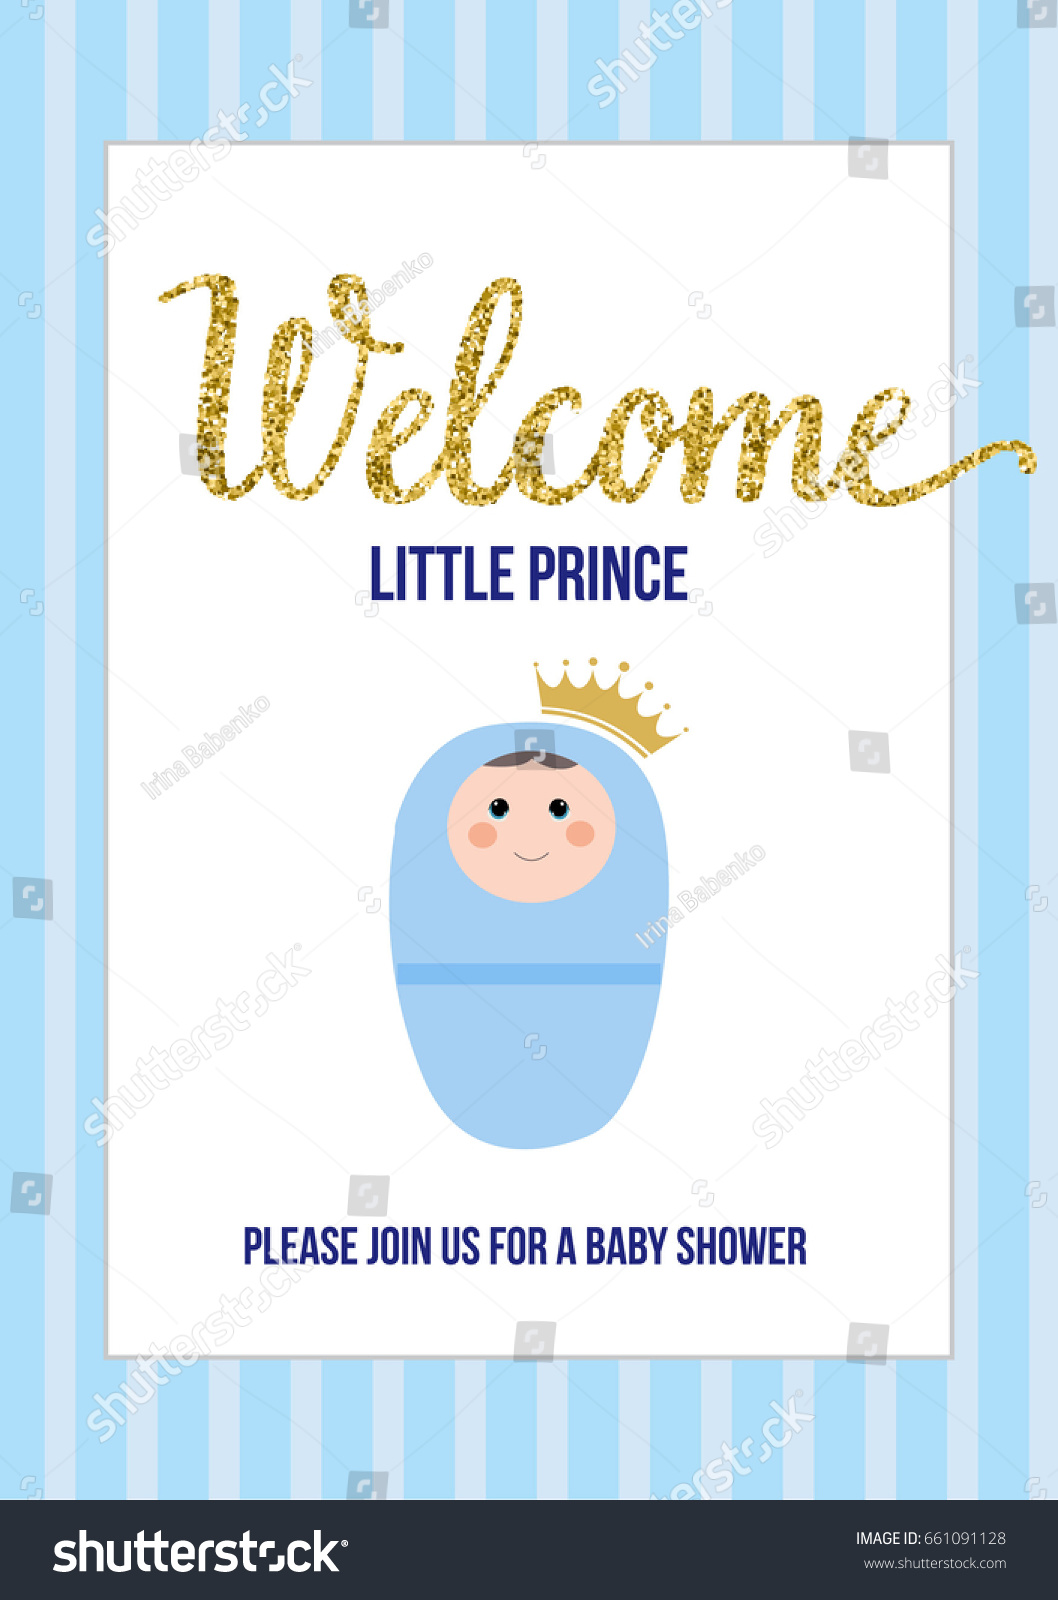 Welcome Little Prince Baby Shower Invitation Stock Vector HD ...